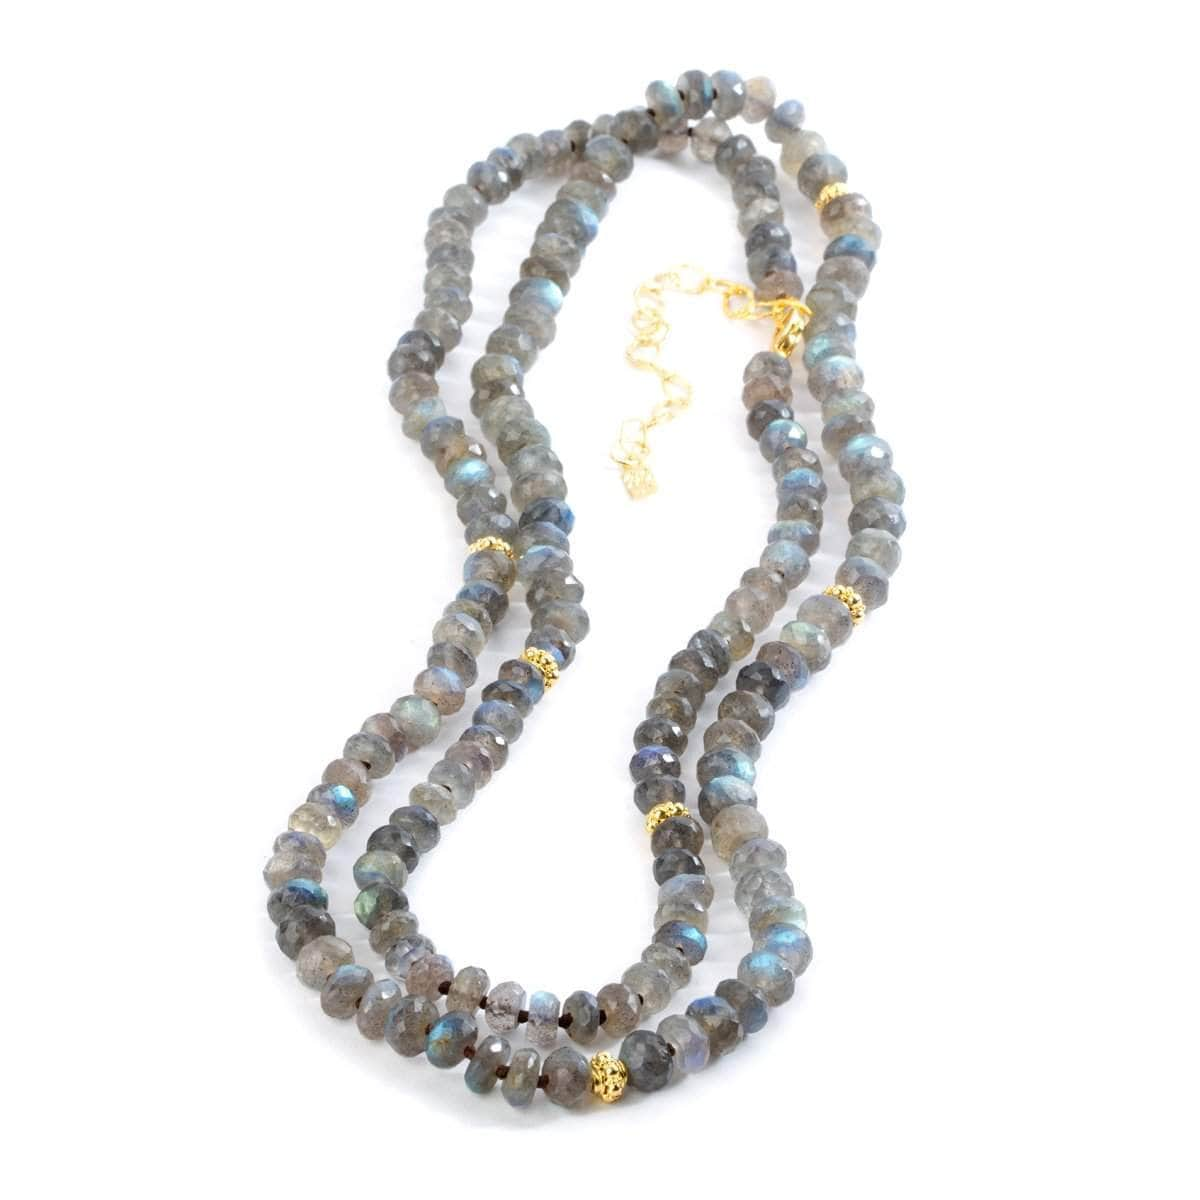 Heirloom 22k Gold Plated & Labradorite Necklace - G8200N-42-Nina Nguyen-Renee Taylor Gallery